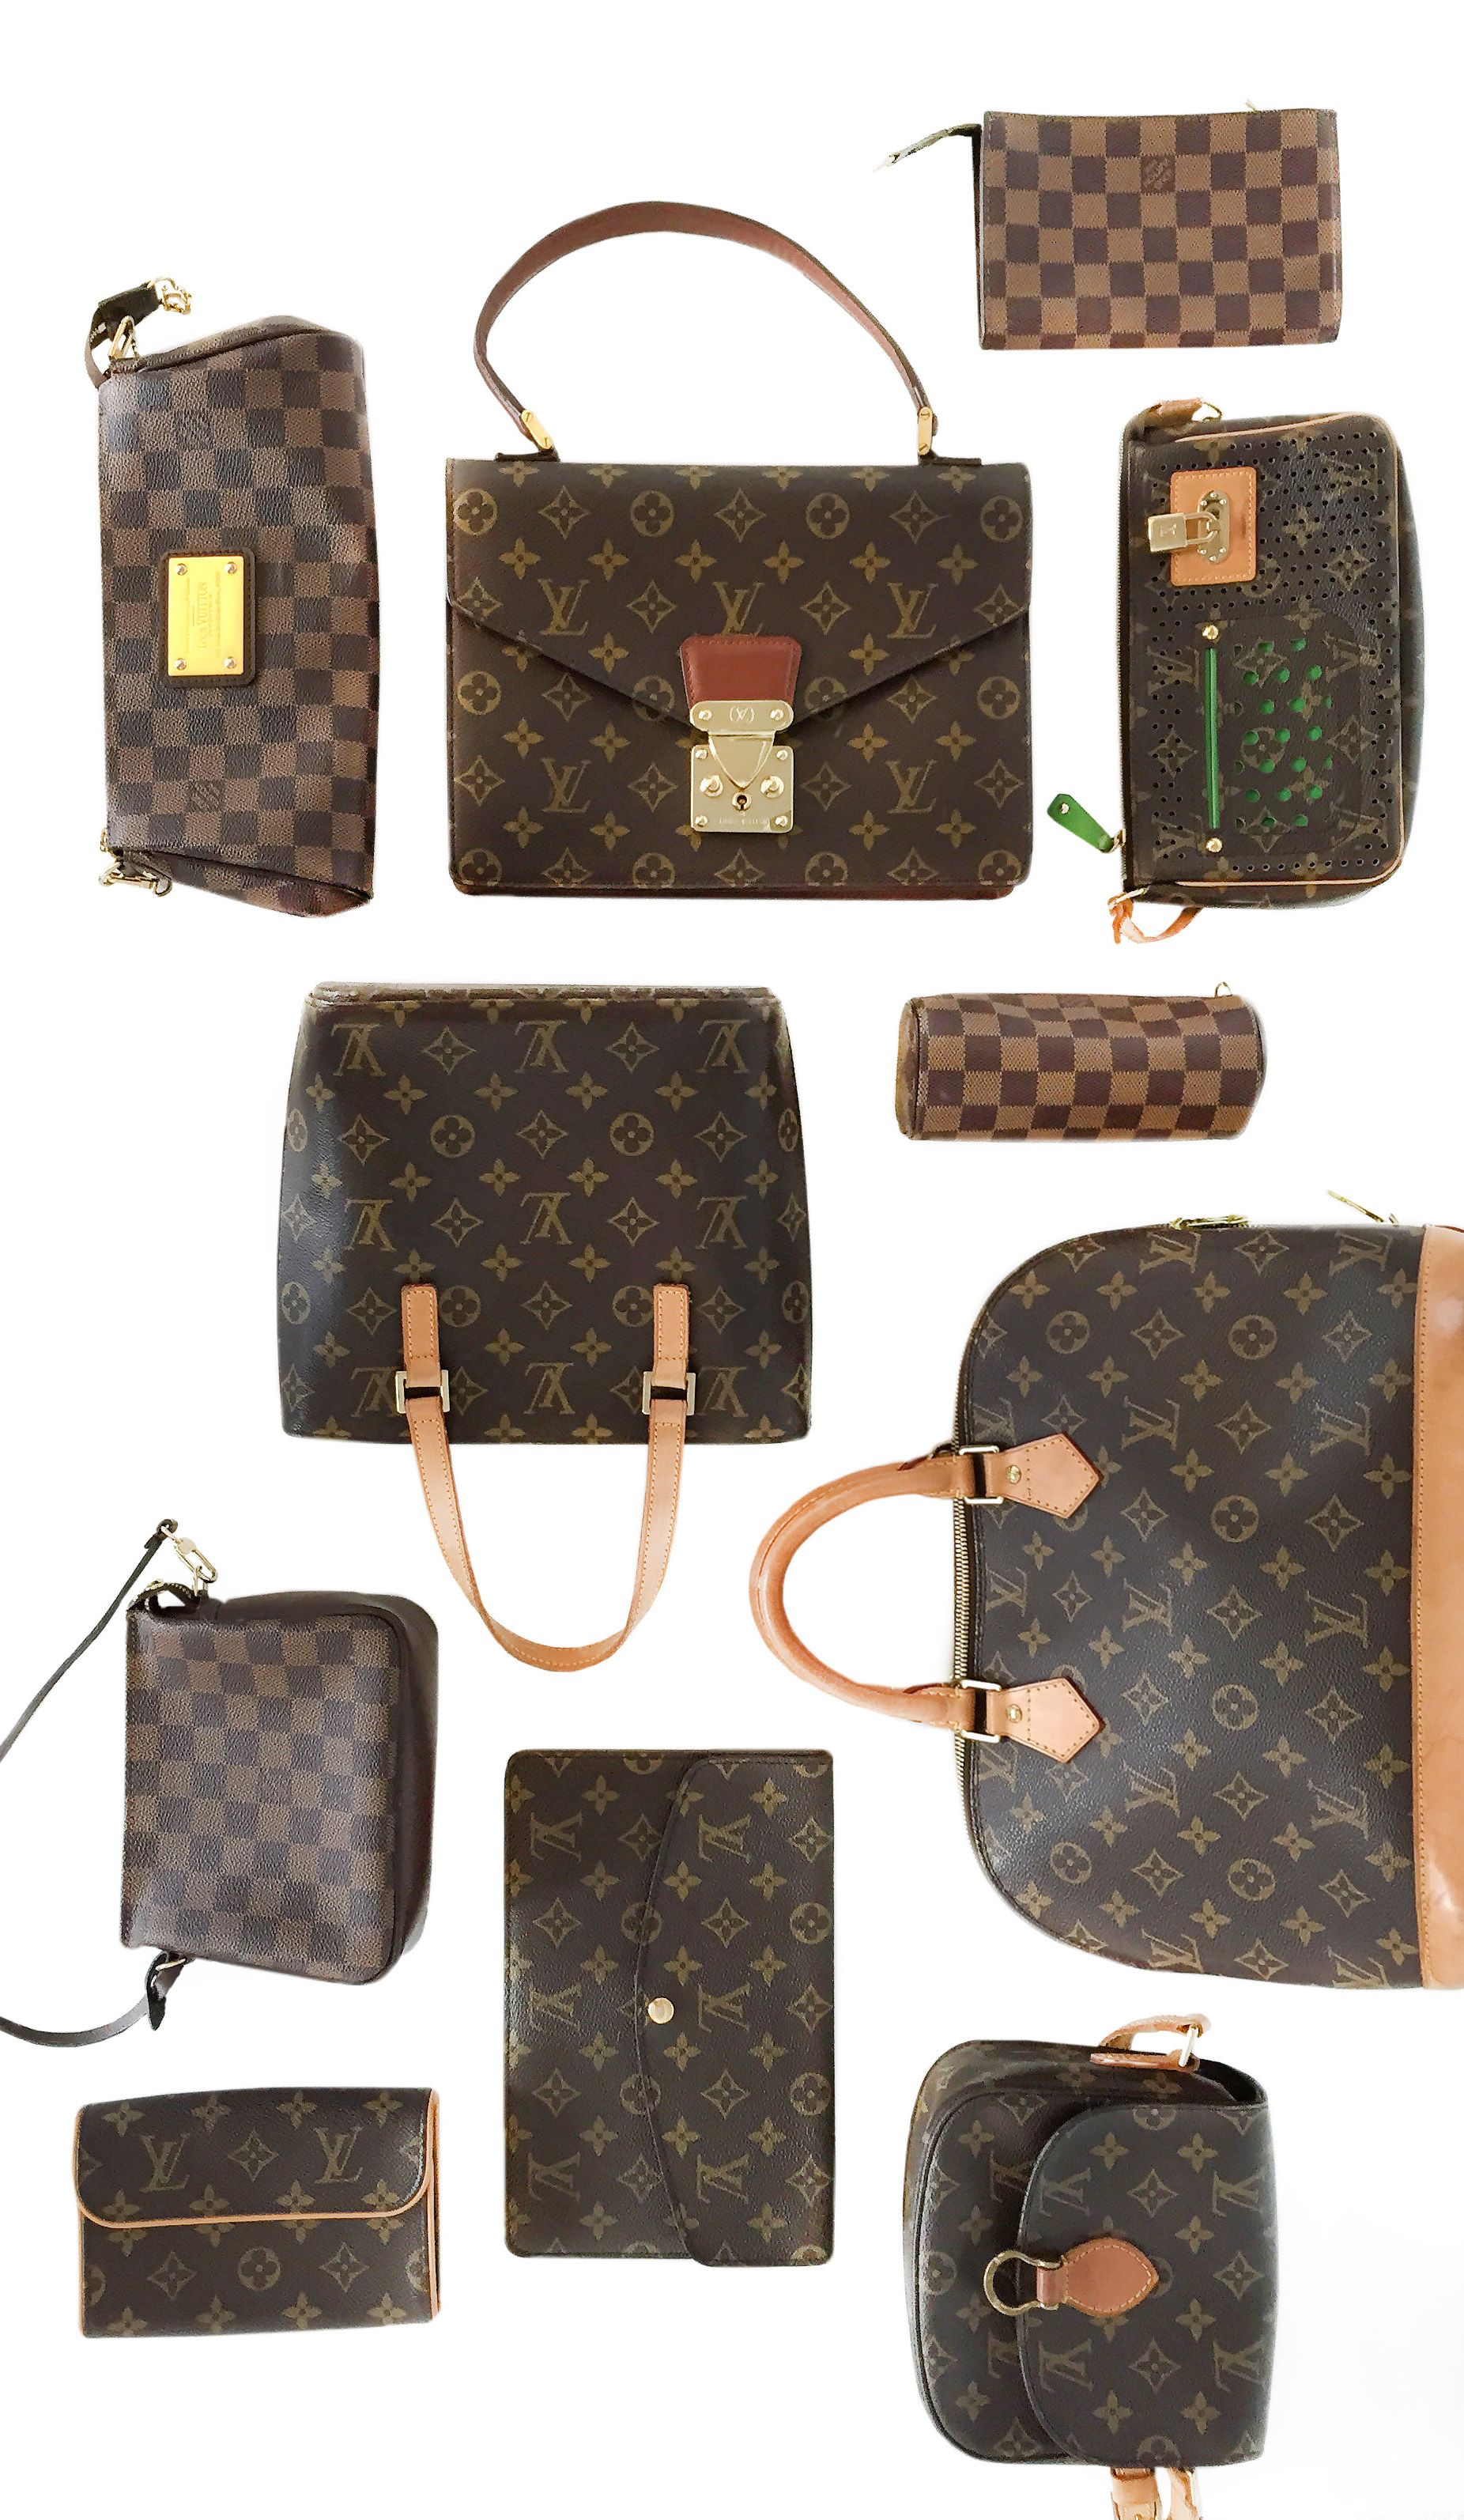 170ffd6a25d8 ... authentic pre-owned Louis Vuitton pieces. Score a treasure from another  woman s closet for up to 90% off retail prices. You won t be sorry.